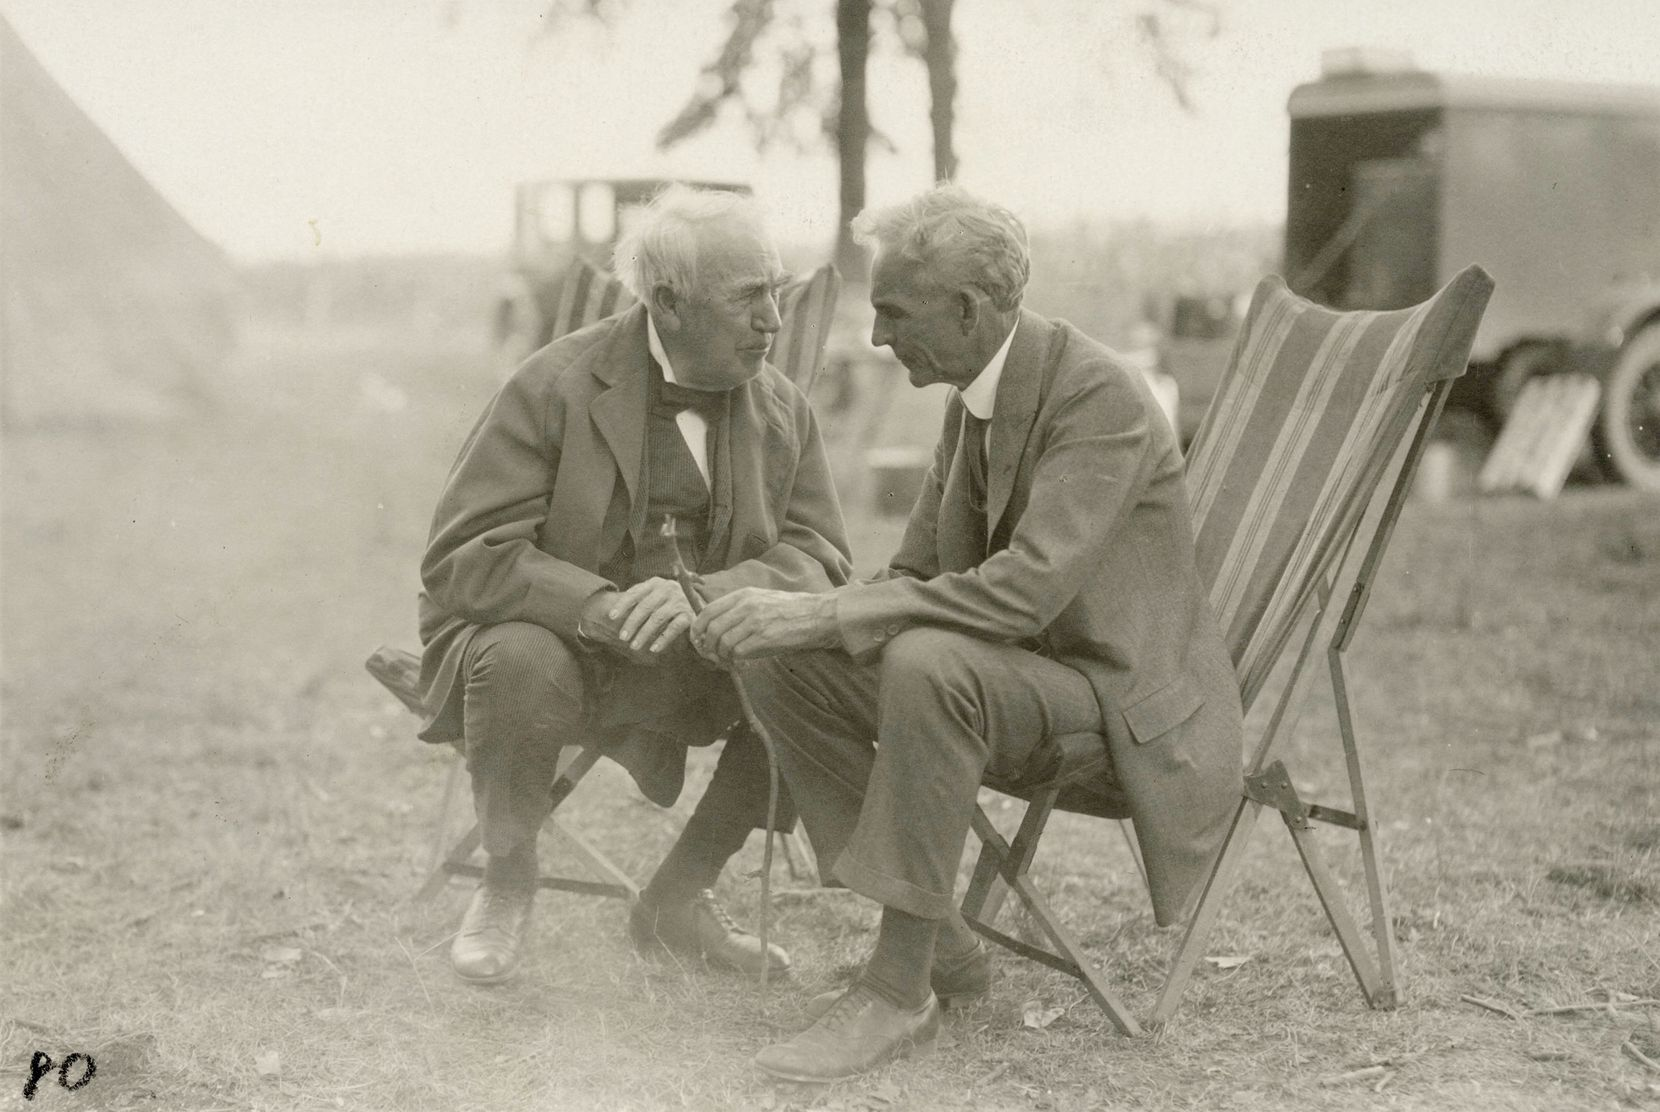 (From left) Thomas Edison and Henry Ford engage in discussion while at a campsite.